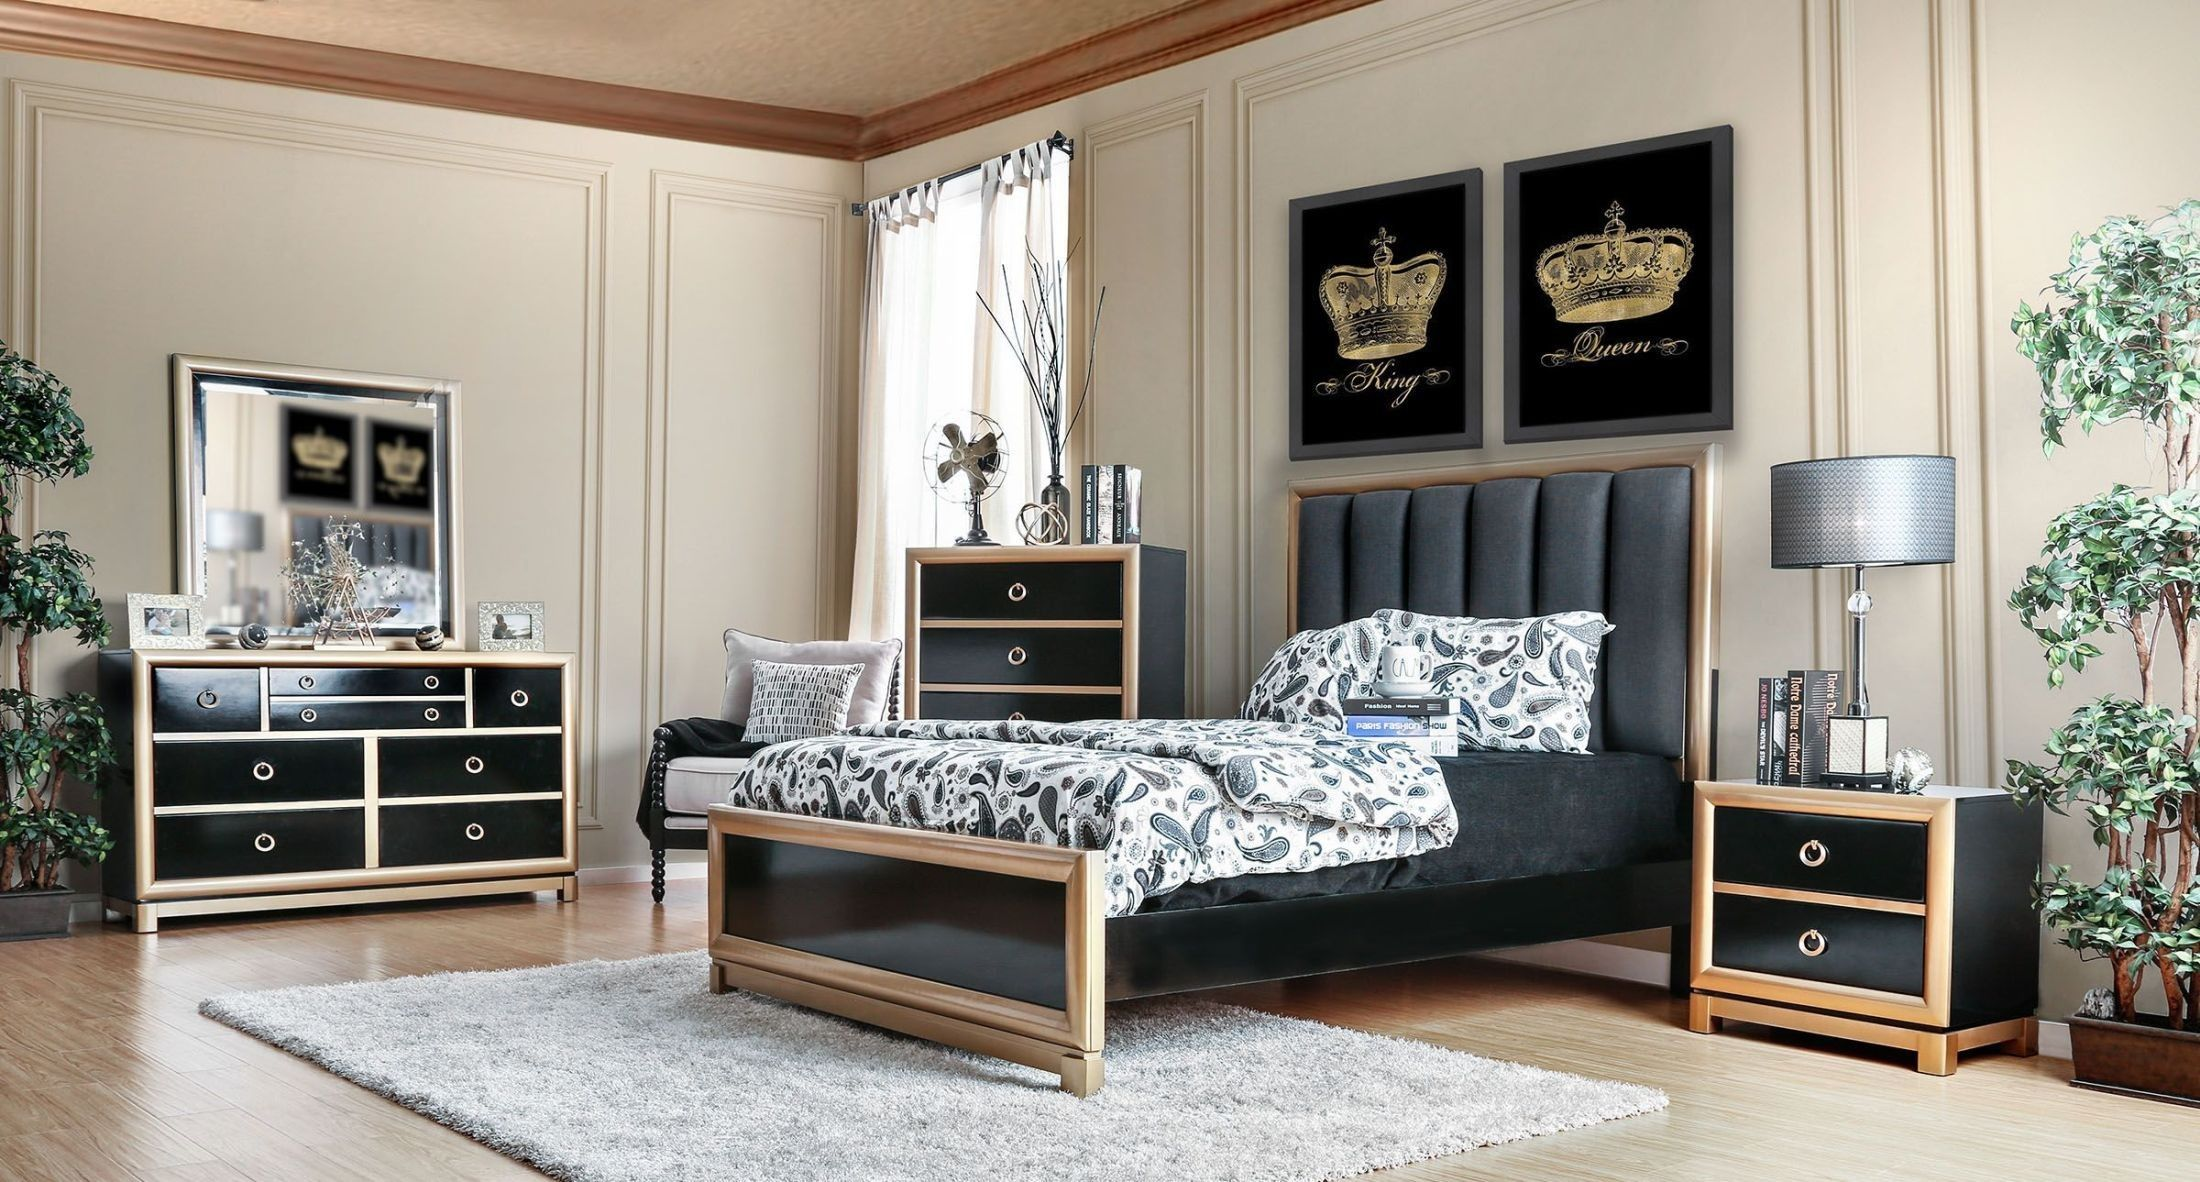 Braunfels Black and Gold Upholstered Panel Bedroom Set